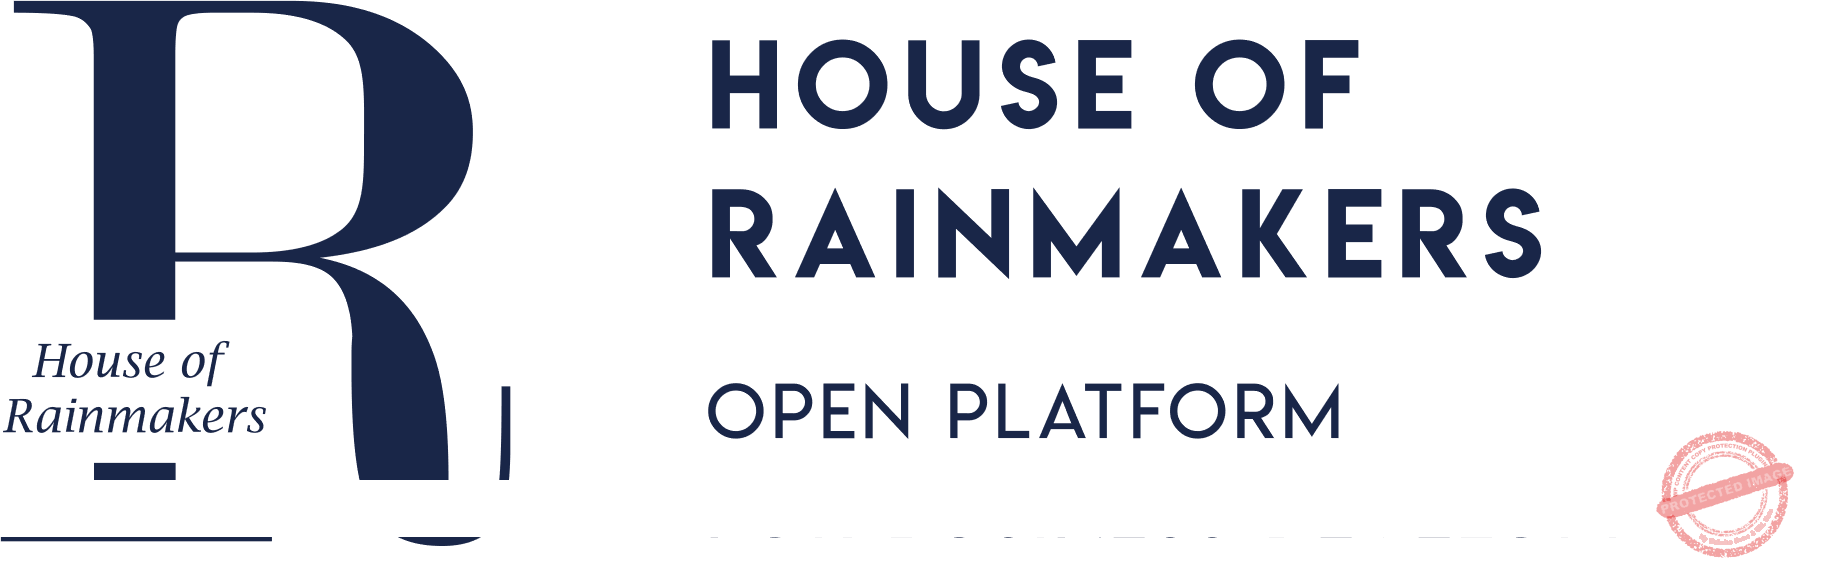 House of rainmakers